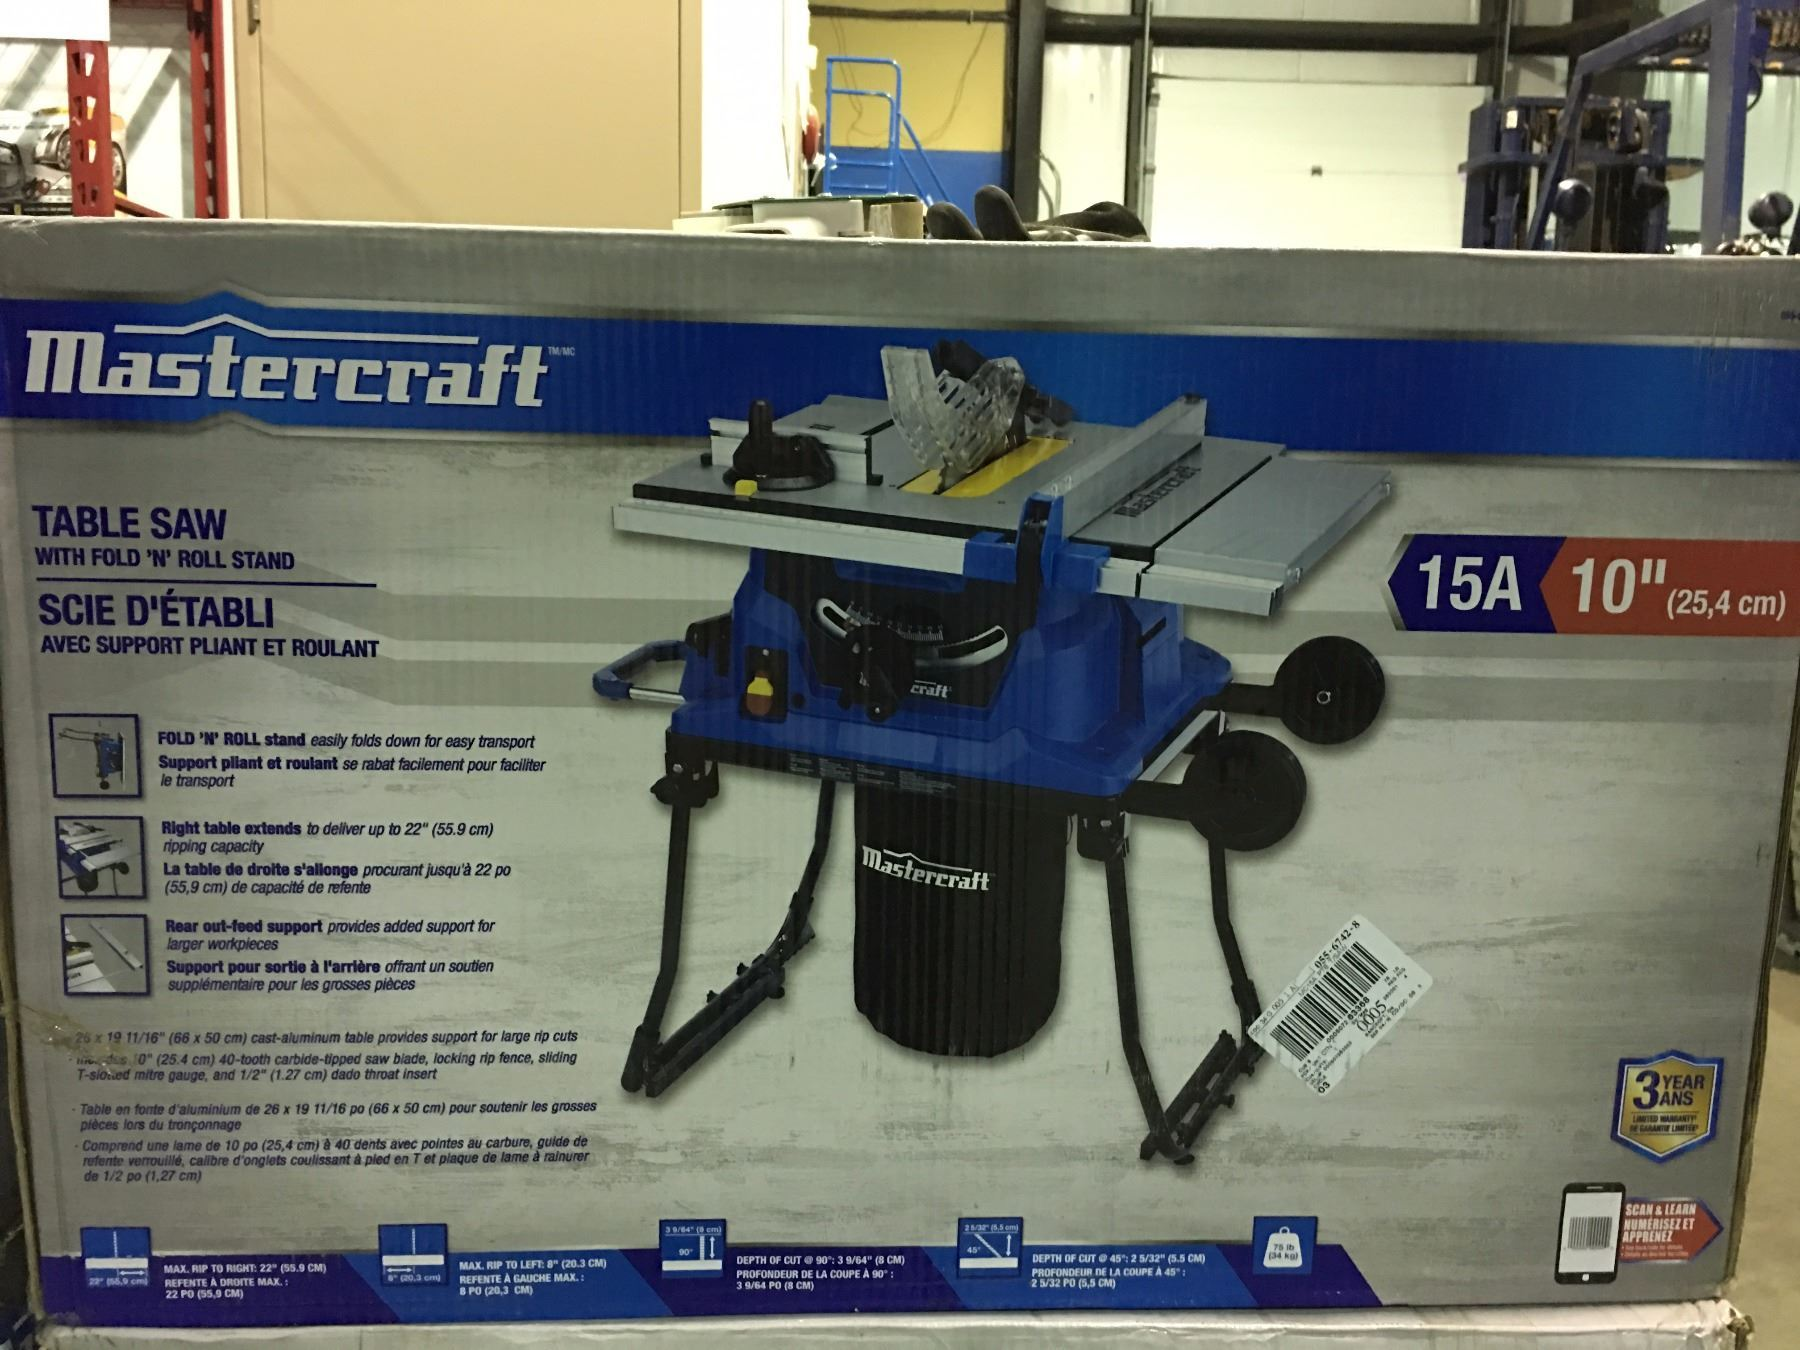 Mastercraft 10 table saw with fold roll stand image 1 mastercraft 10 table saw with fold roll stand greentooth Choice Image